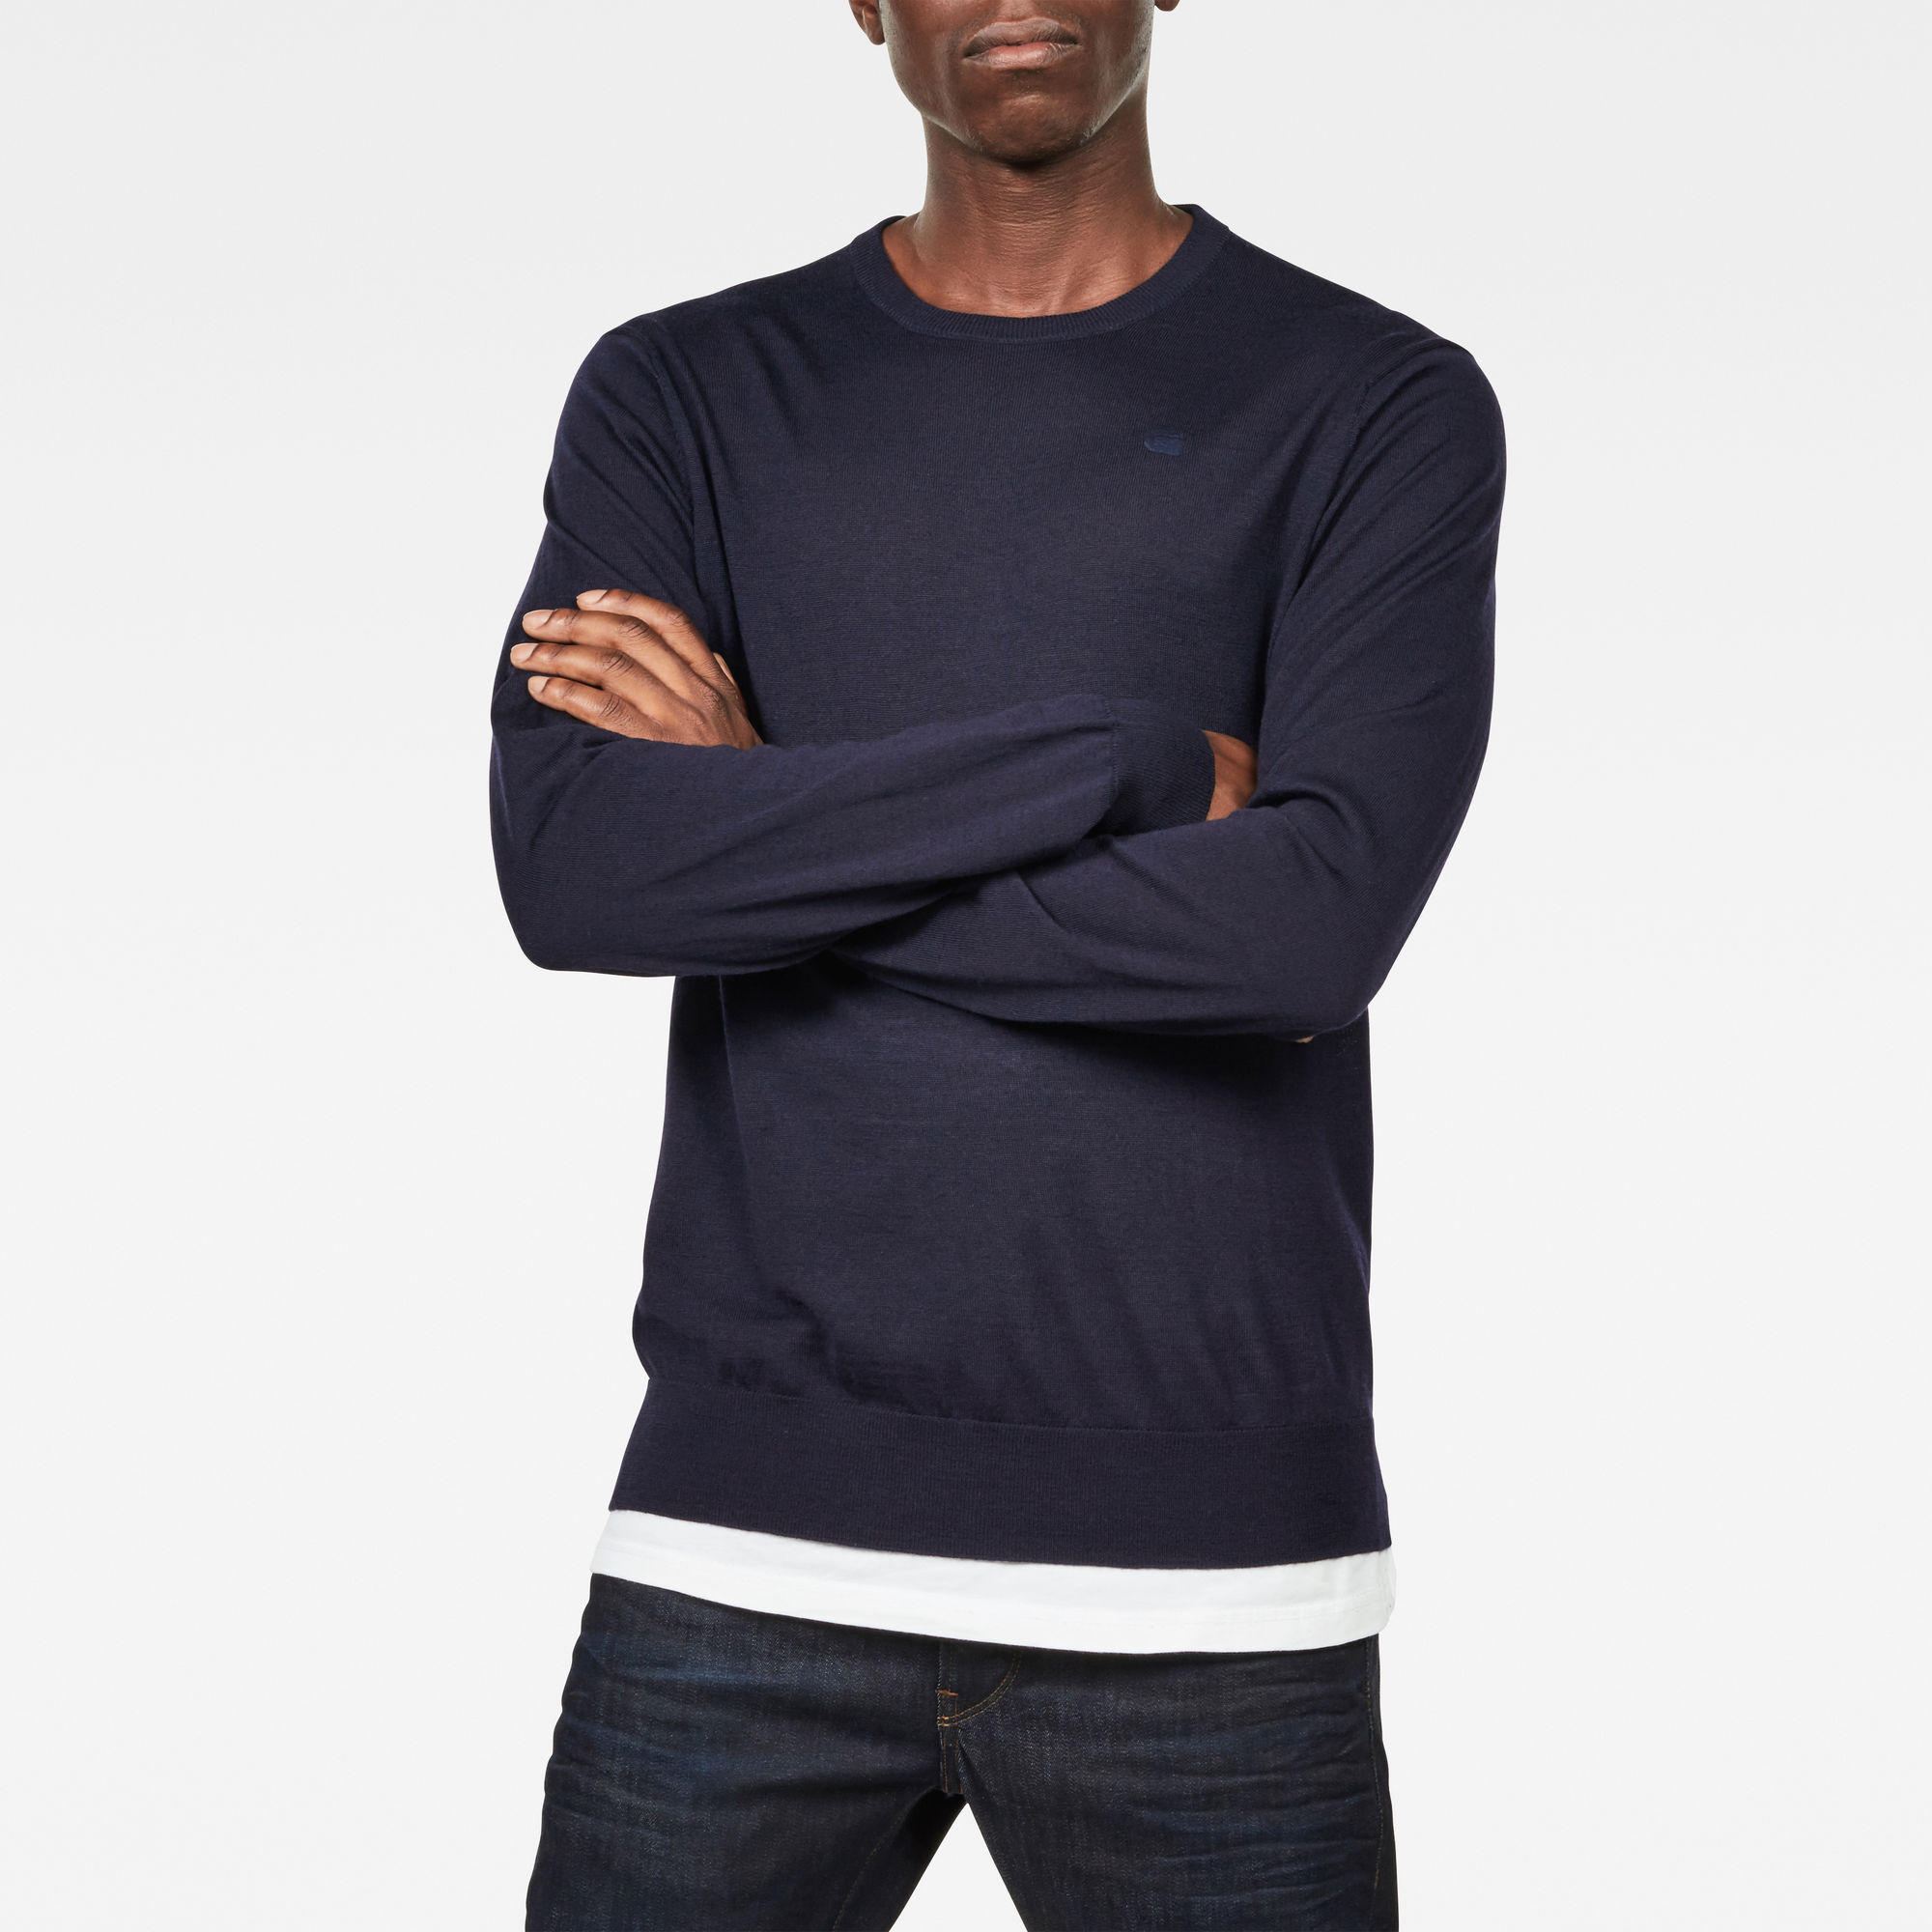 Image of G Star Raw Core Knit